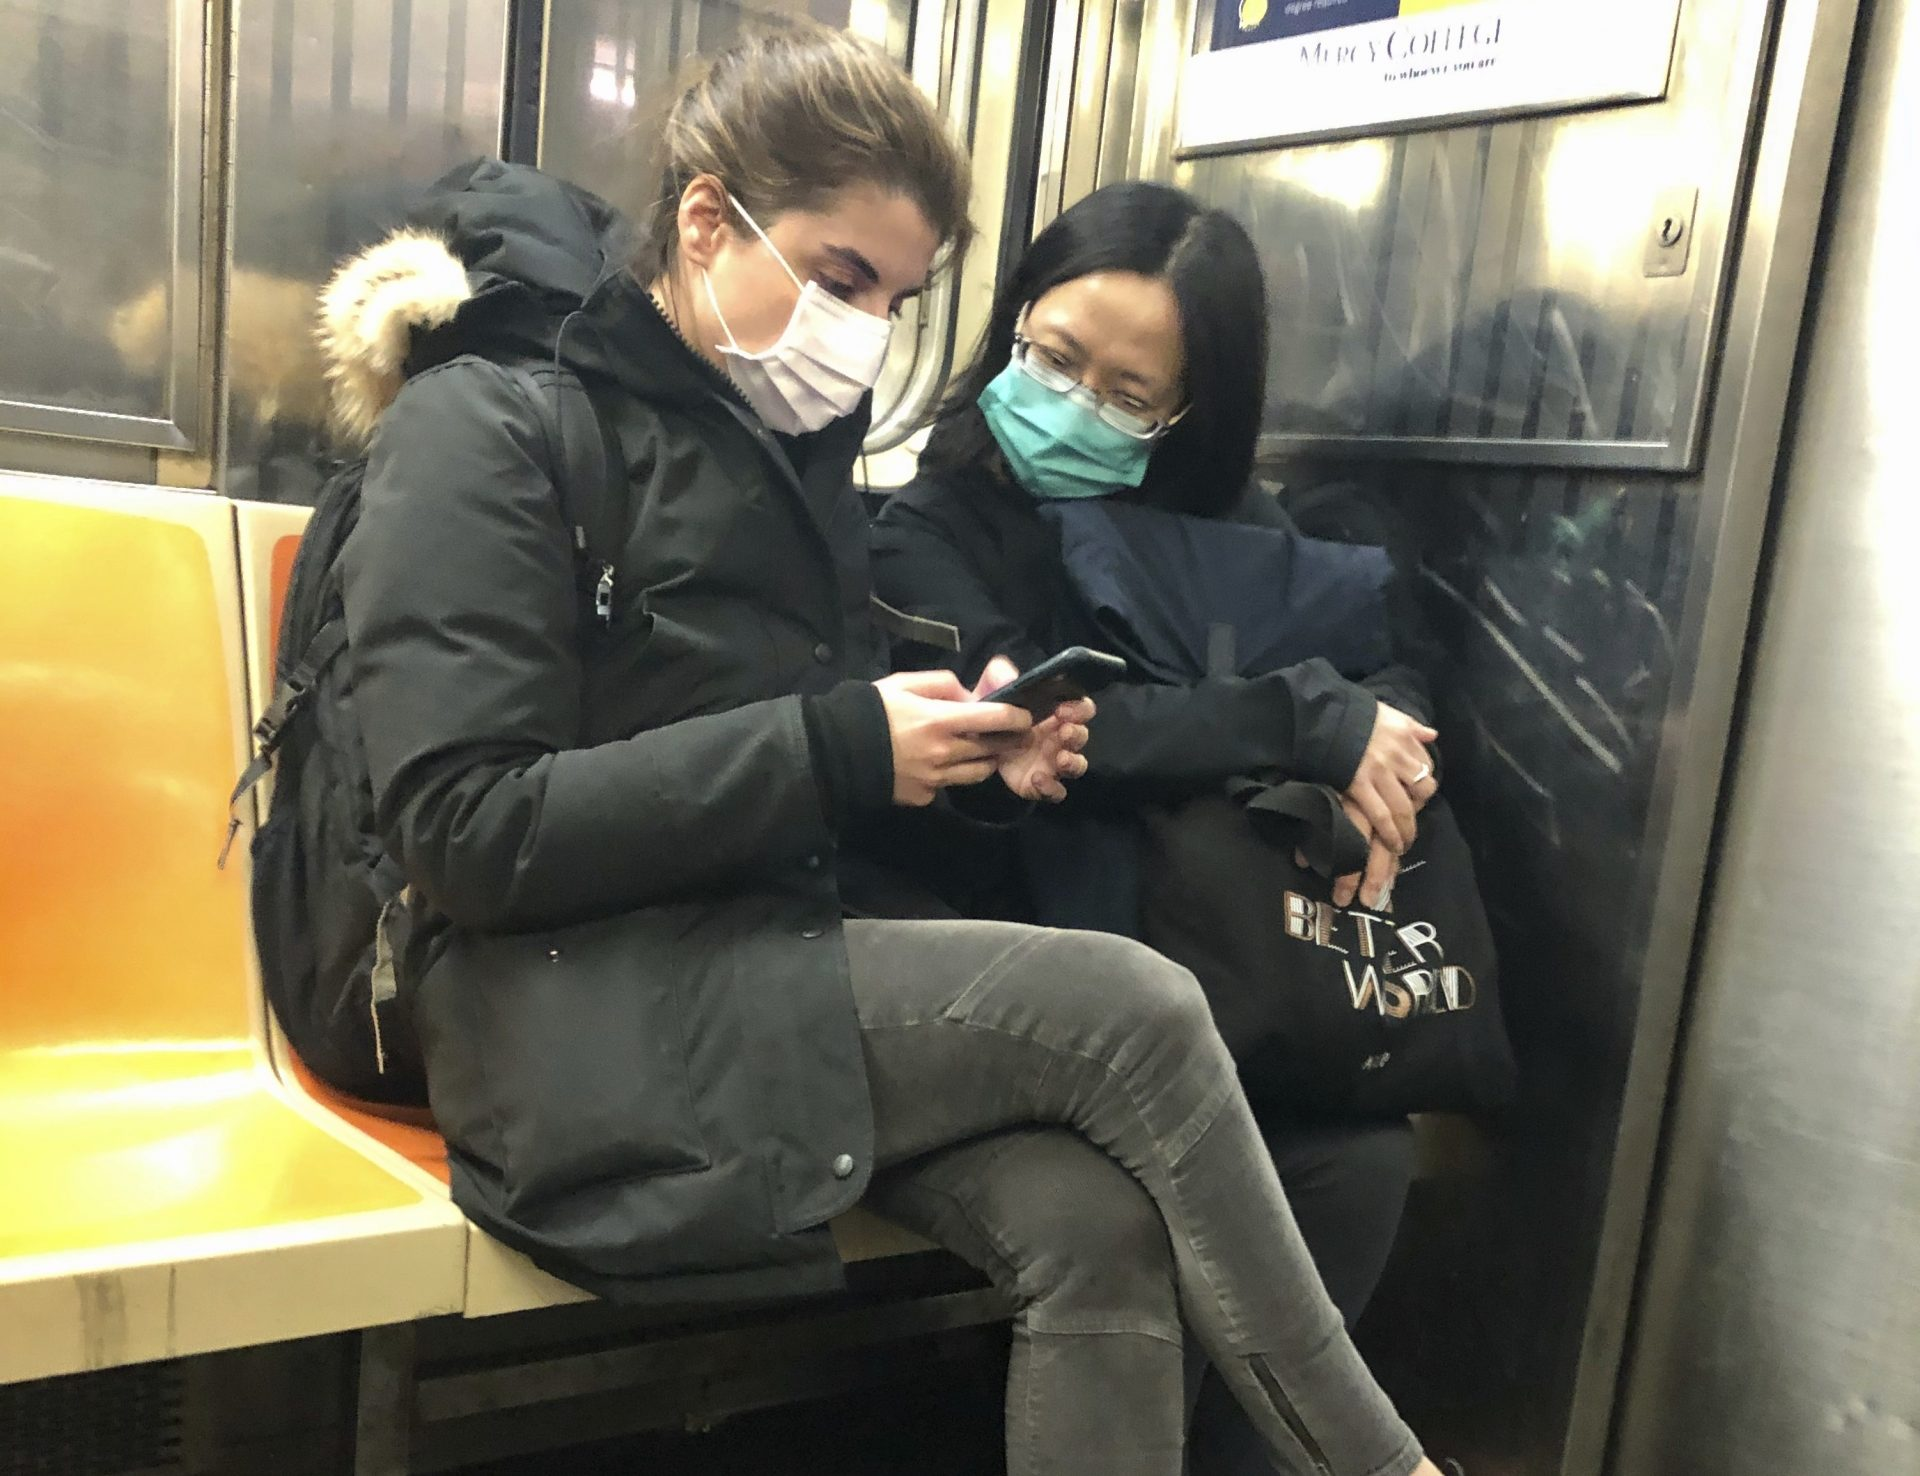 In this March 4, 2020 photo, two women wear masks as they ride a subway train, in New York. Two more cases of the new coronavirus have been confirmed in New York City, raising New York state's total to 13, Mayor Bill de Blasio said Thursday.